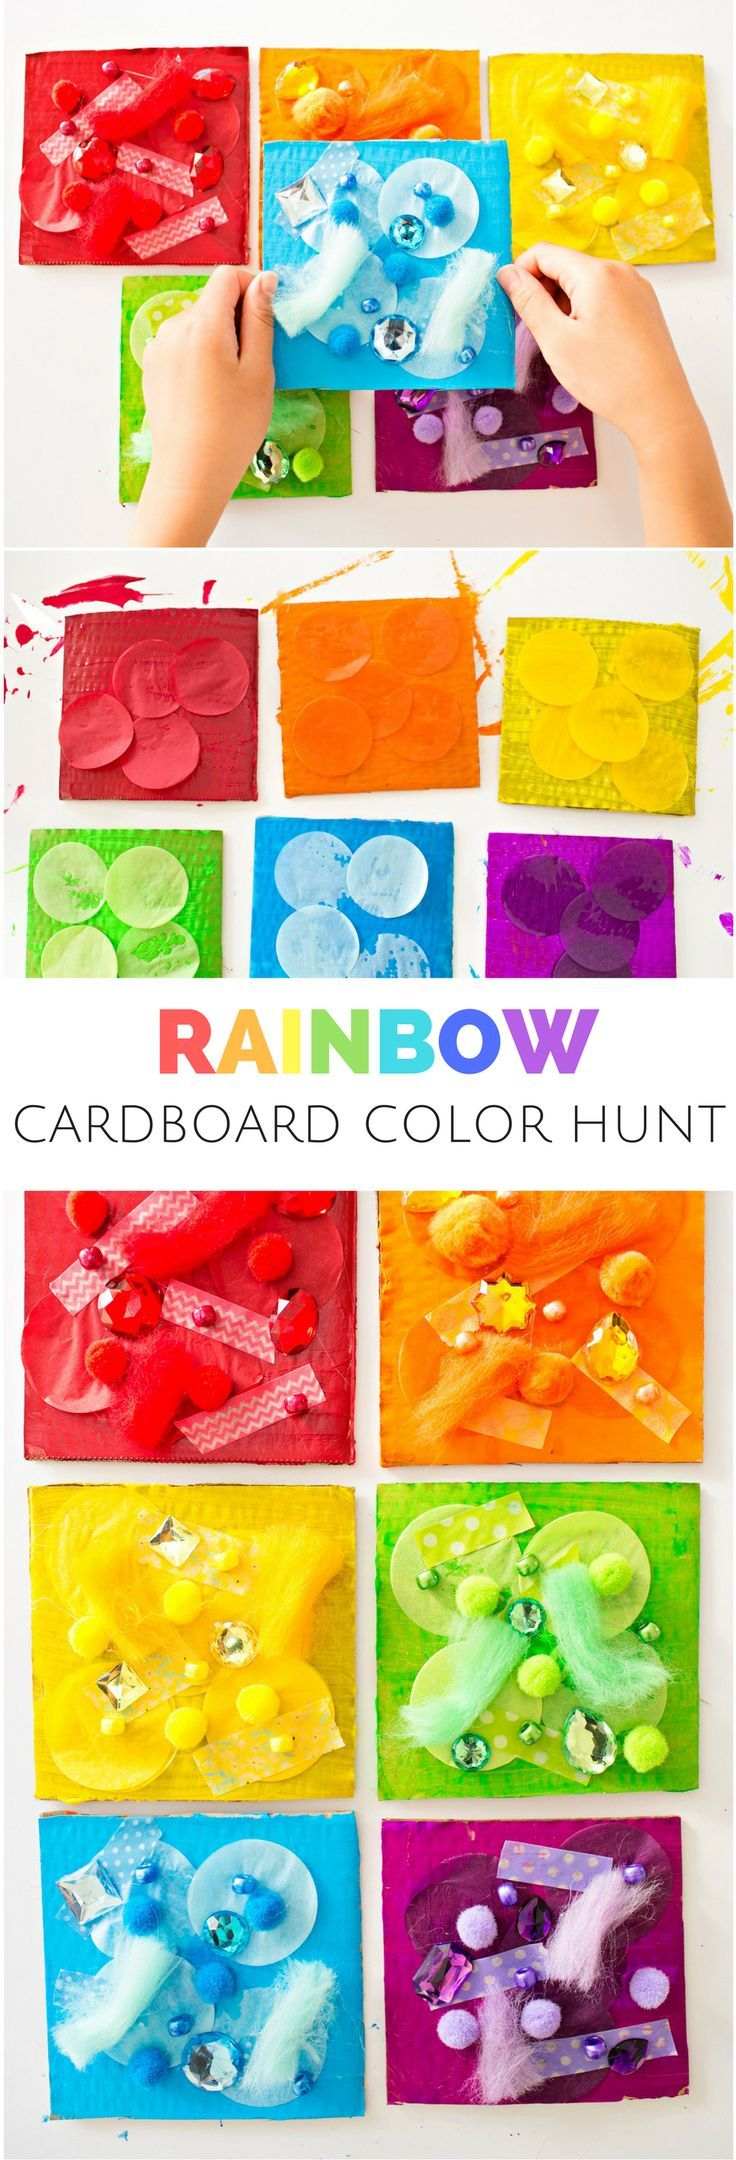 Colors preschool project - Rainbow Color Hunt Cardboard Art Fun Way To Explore And Learn Colors With Kids And